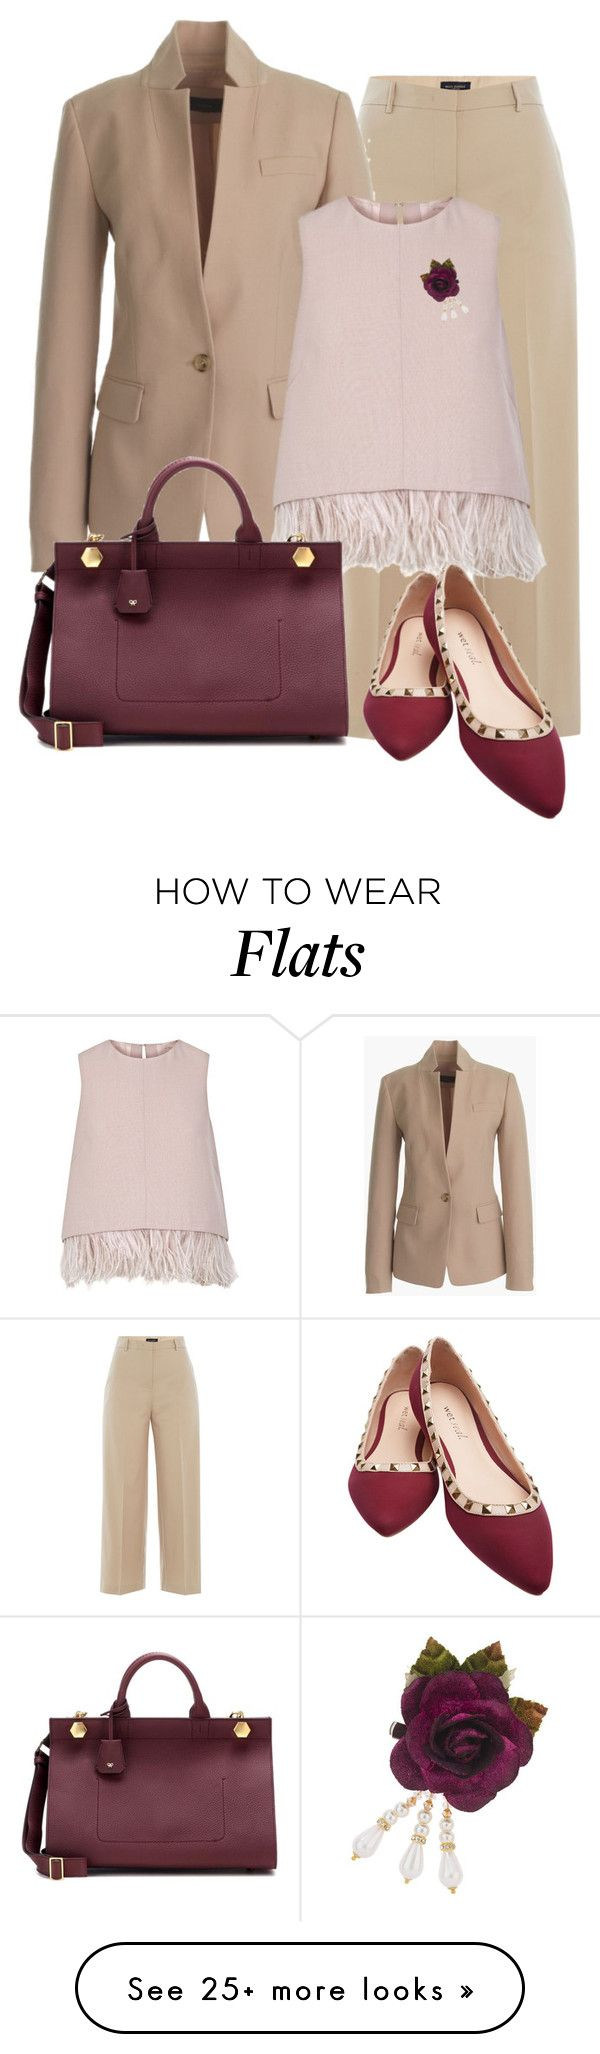 """""""Untitled #1118"""" by mrs-rc on Polyvore featuring Piazza Sempione, J.Crew, The 2nd Skin Co., Anya Hindmarch, Wet Seal, Topshop, women's clothing, women's fashion, women and female"""